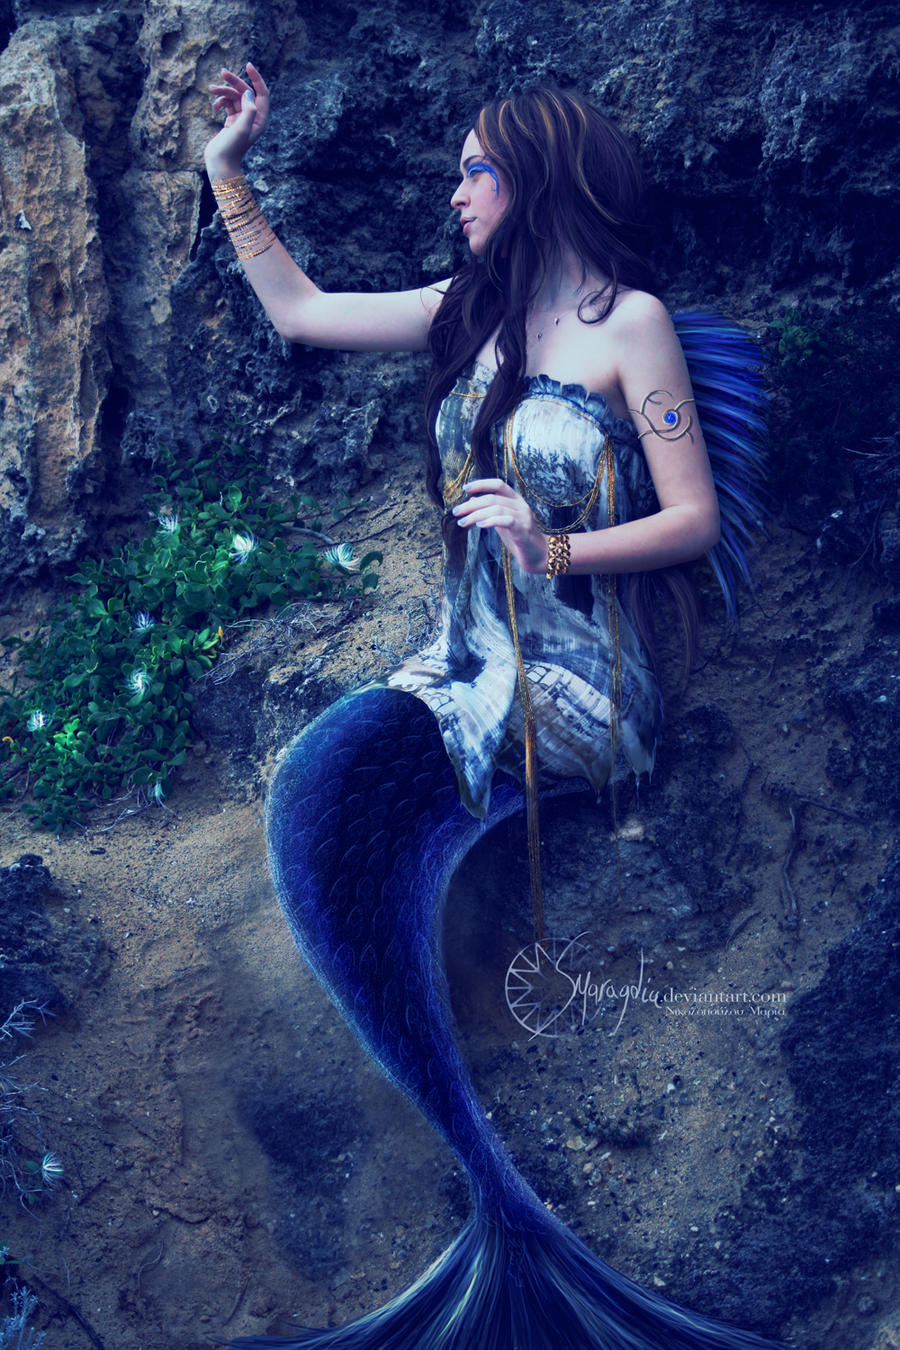 Mermaid__Naga_manip_by_Smaragdia.jpg